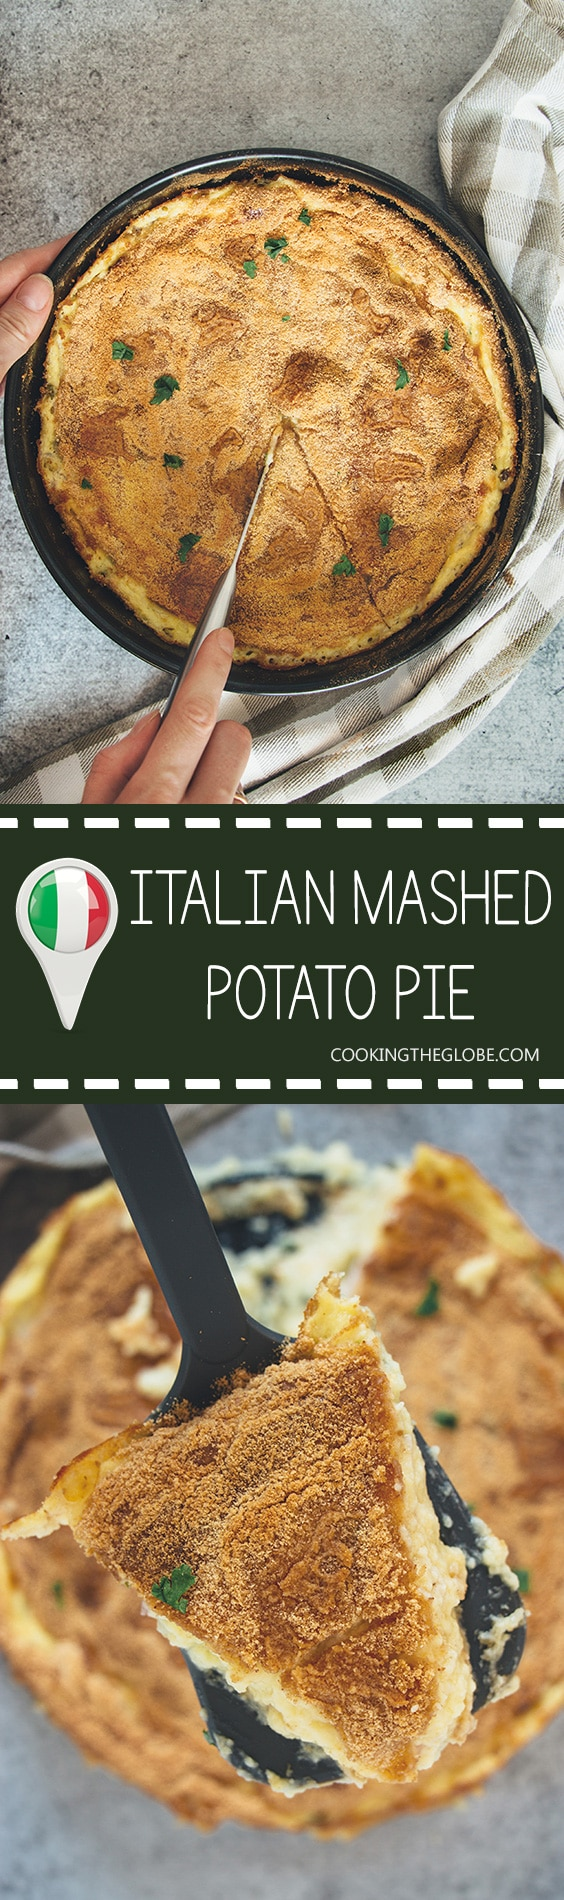 This Italian mashed potato pie is creamy, comforting, and crazy delicious. Featuring three types of cheese and two types of meat, it makes a great side or even a main dish! | cookingtheglobe.com